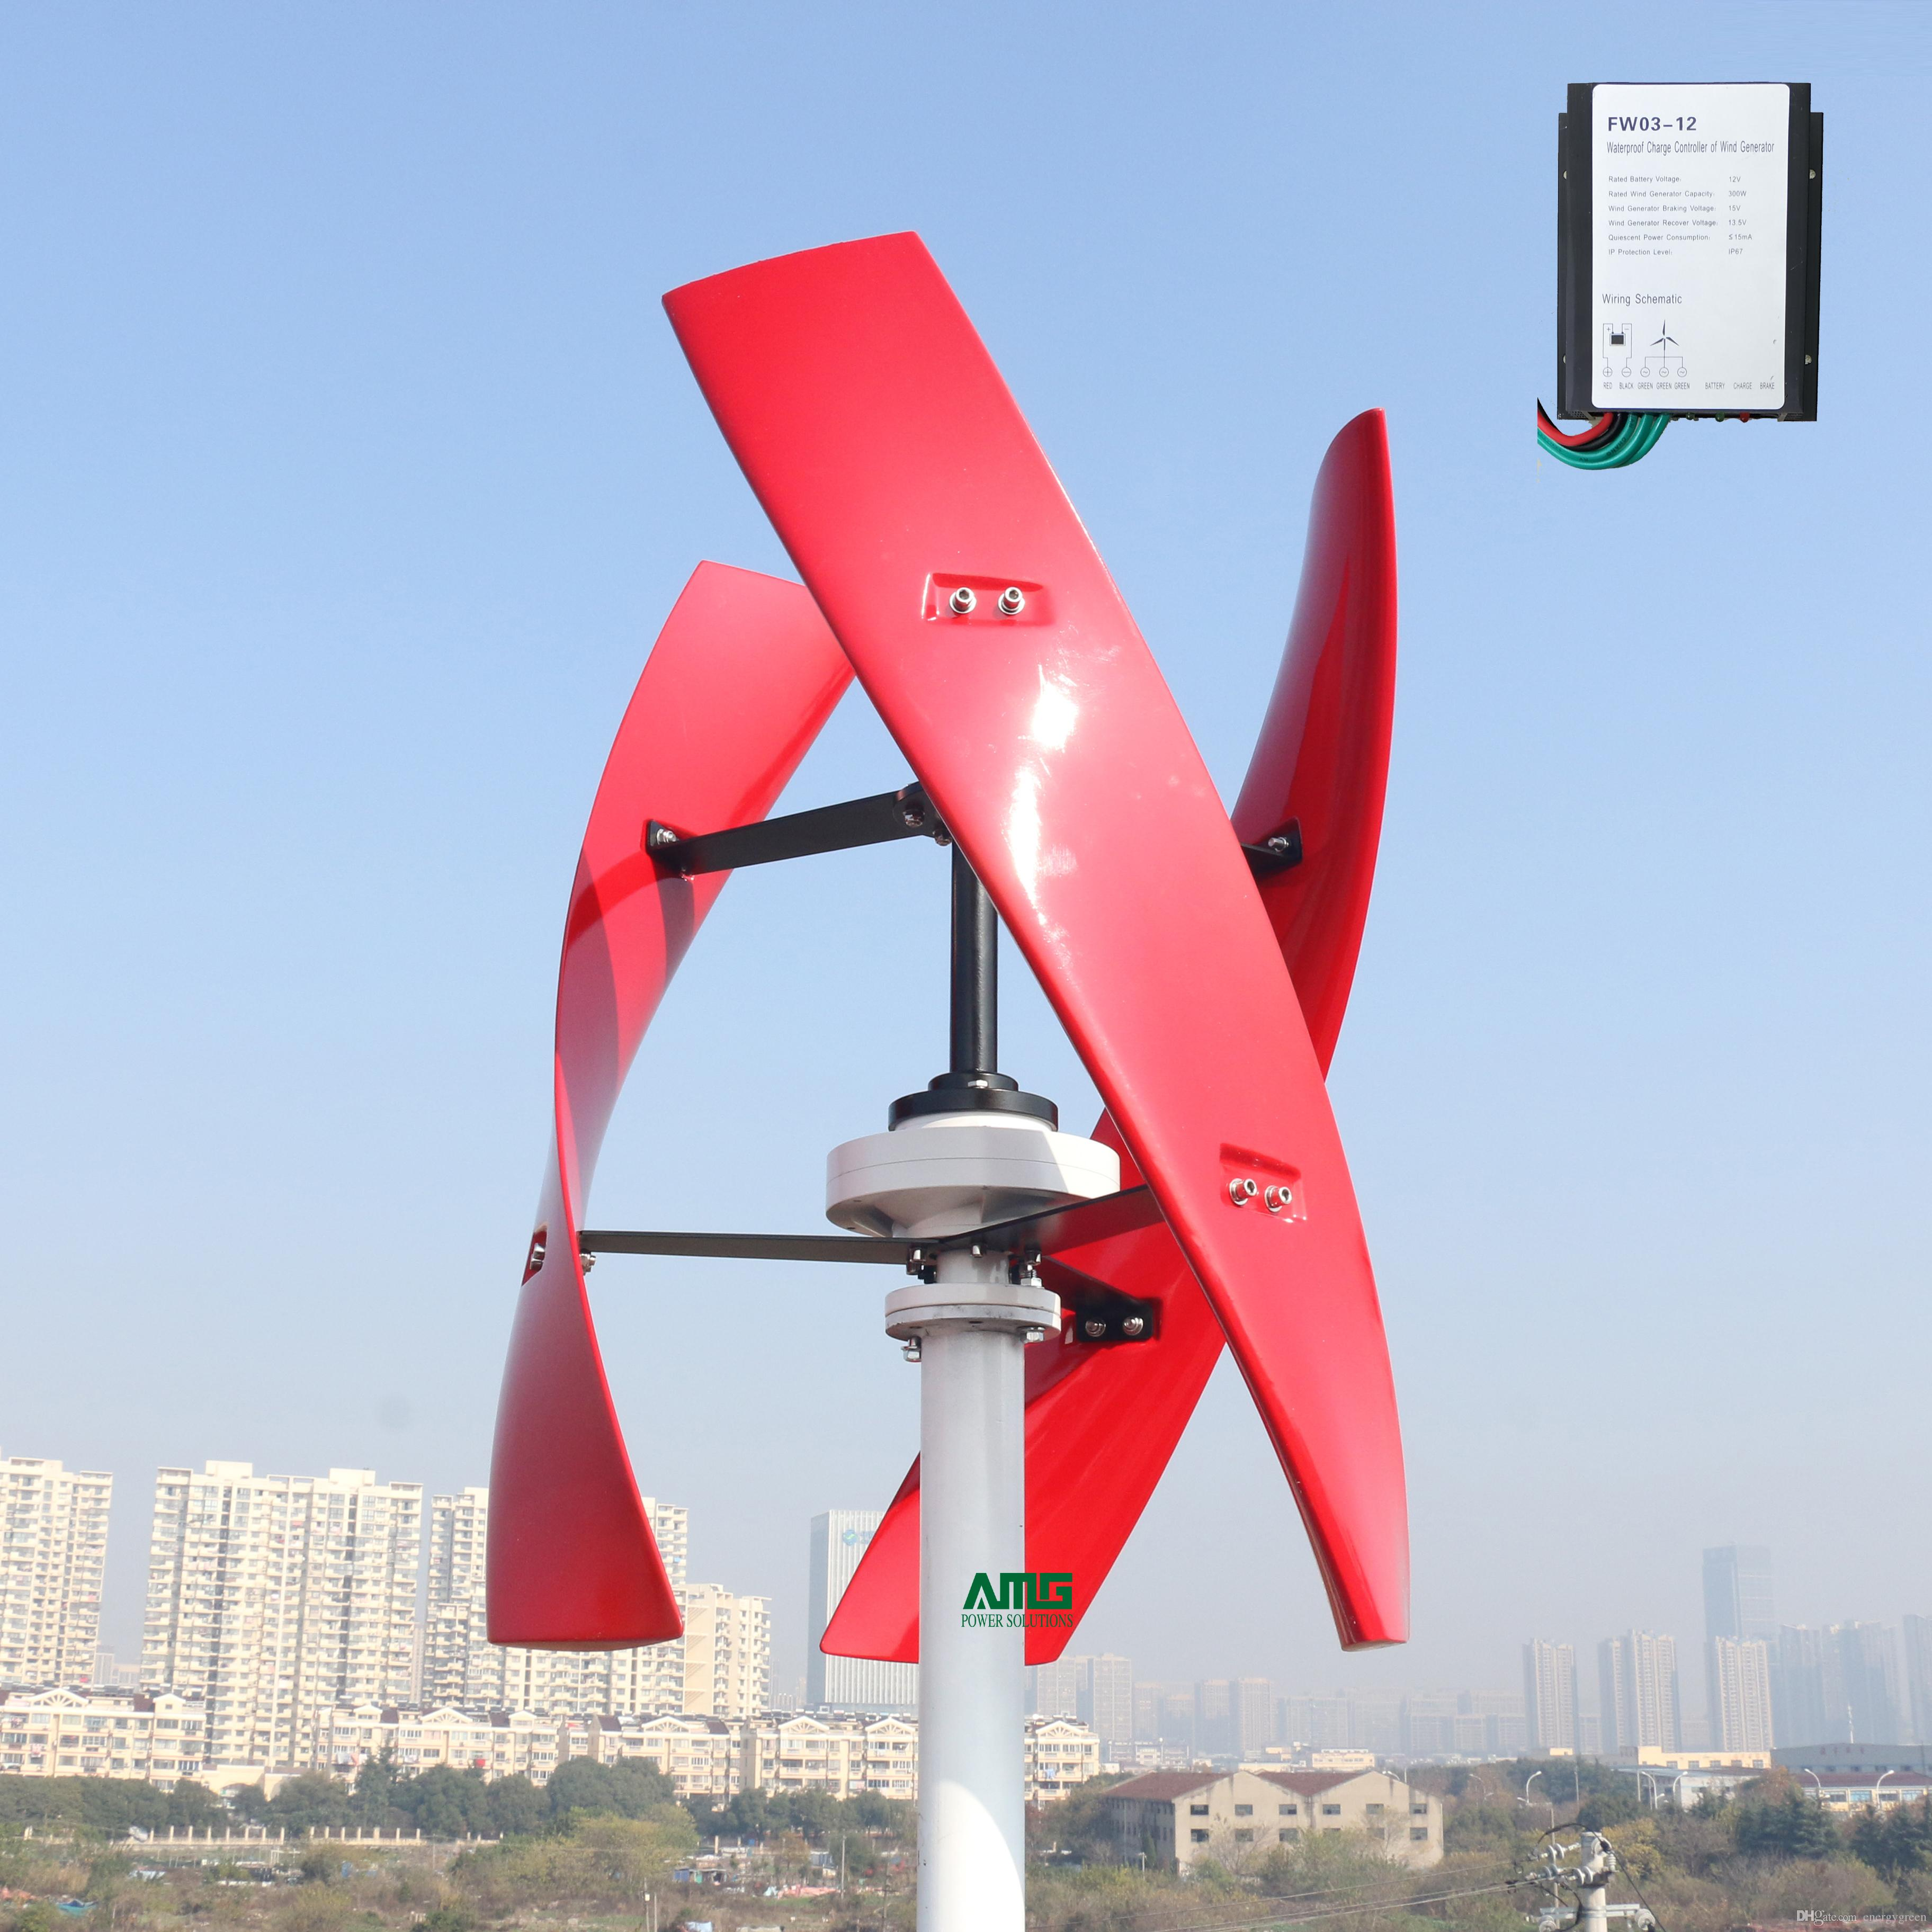 600w 24v spiral wind turbine generator red/white vawt vertical axis residential  energy with pwm charger controller small wind turbines wind turbine blade